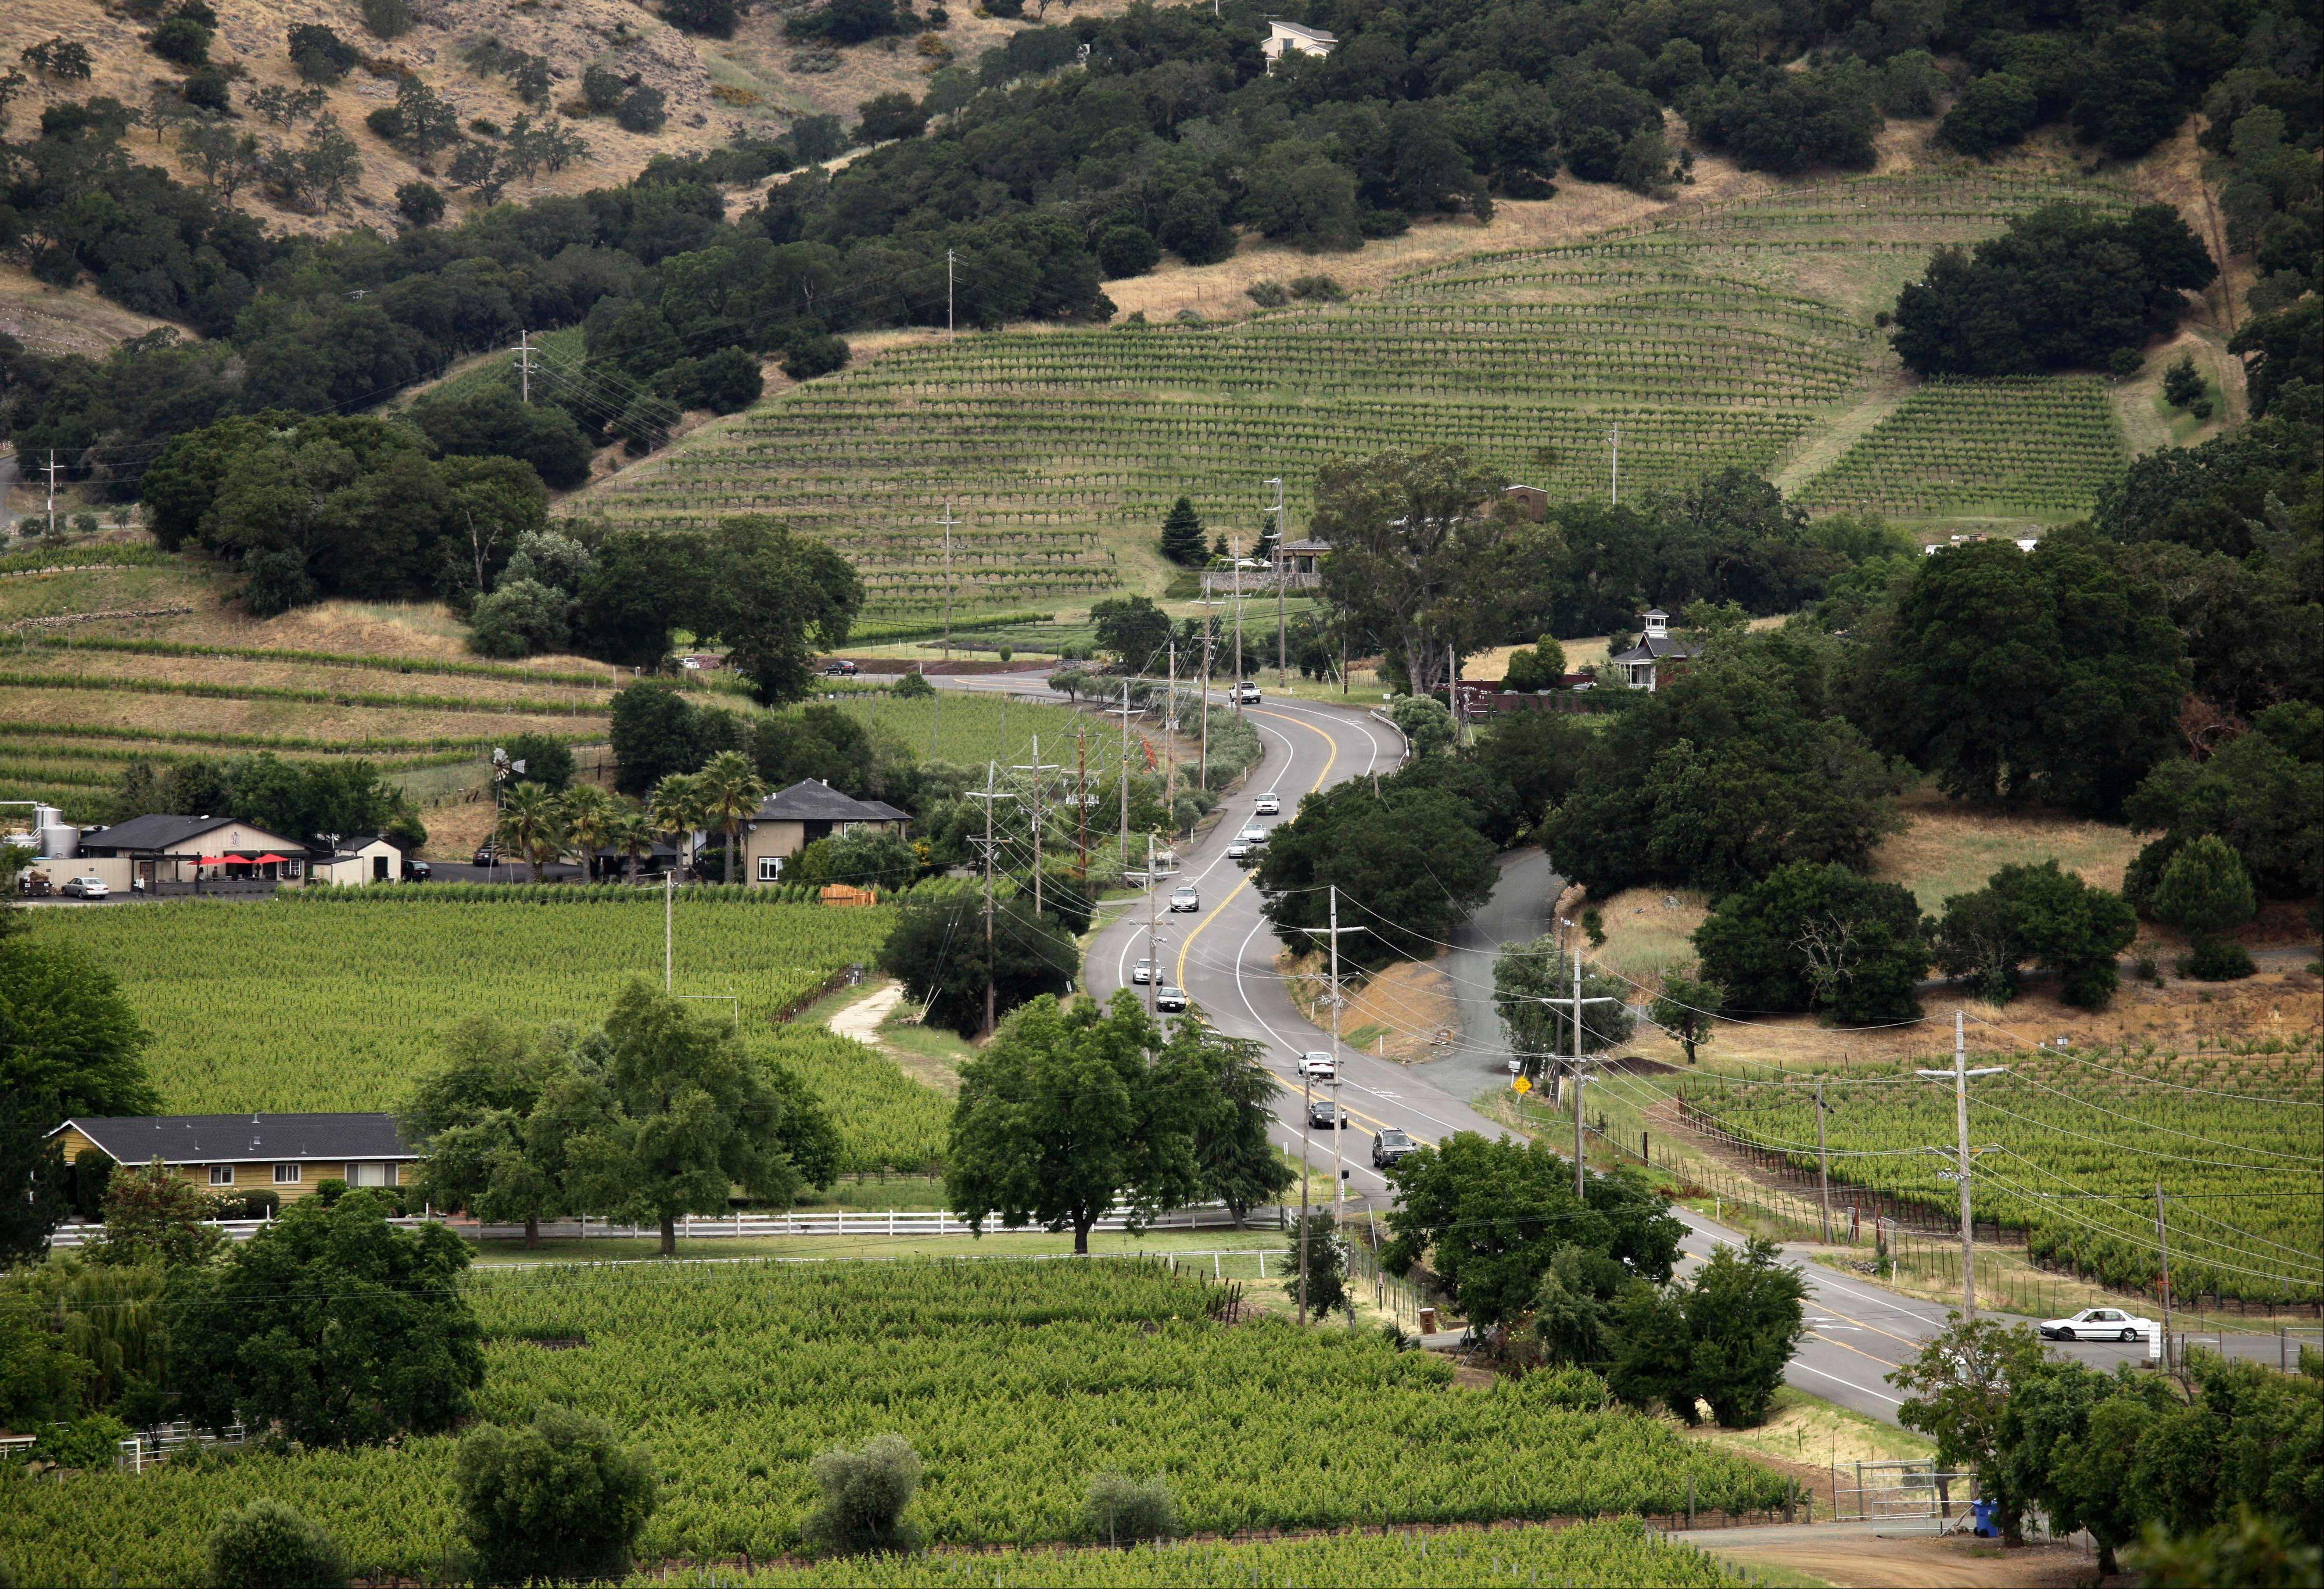 The Silverado Trail winds through the Stags Leap District in this view from Silverado Vineyards in Napa, Calif.